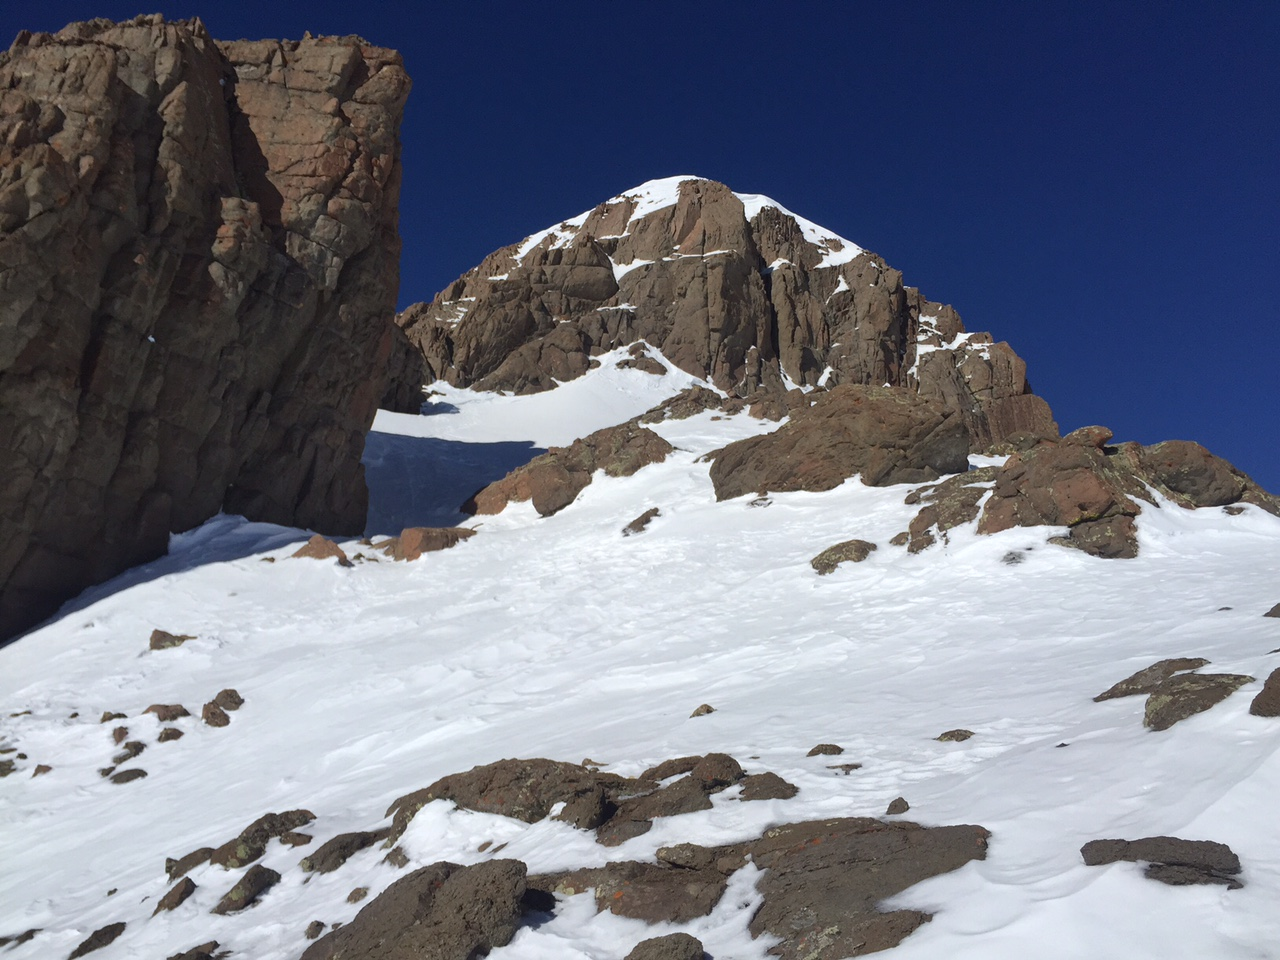 Nearing the summit pitch with the Ship's Prow (left).